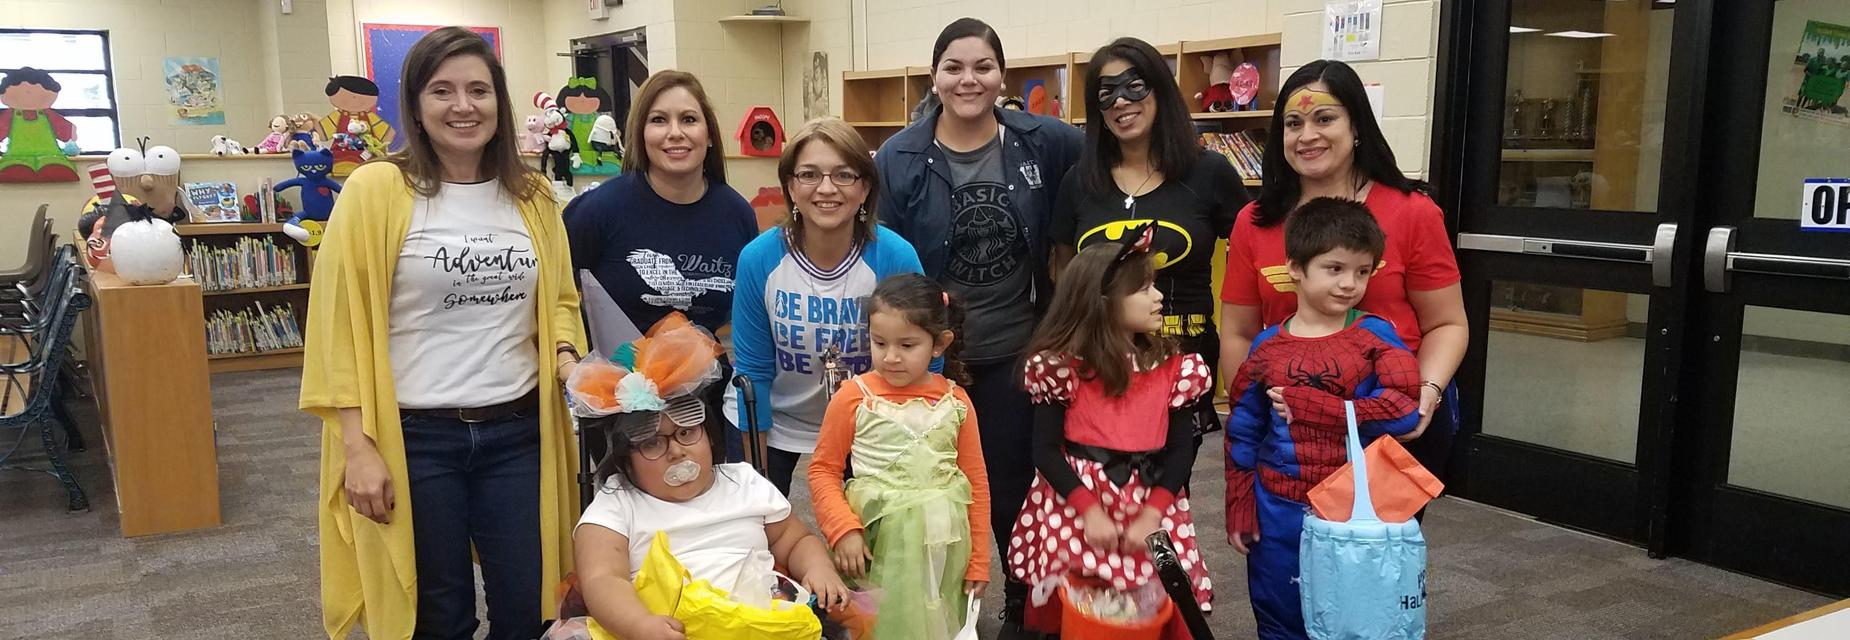 Trick or treating at the LRC